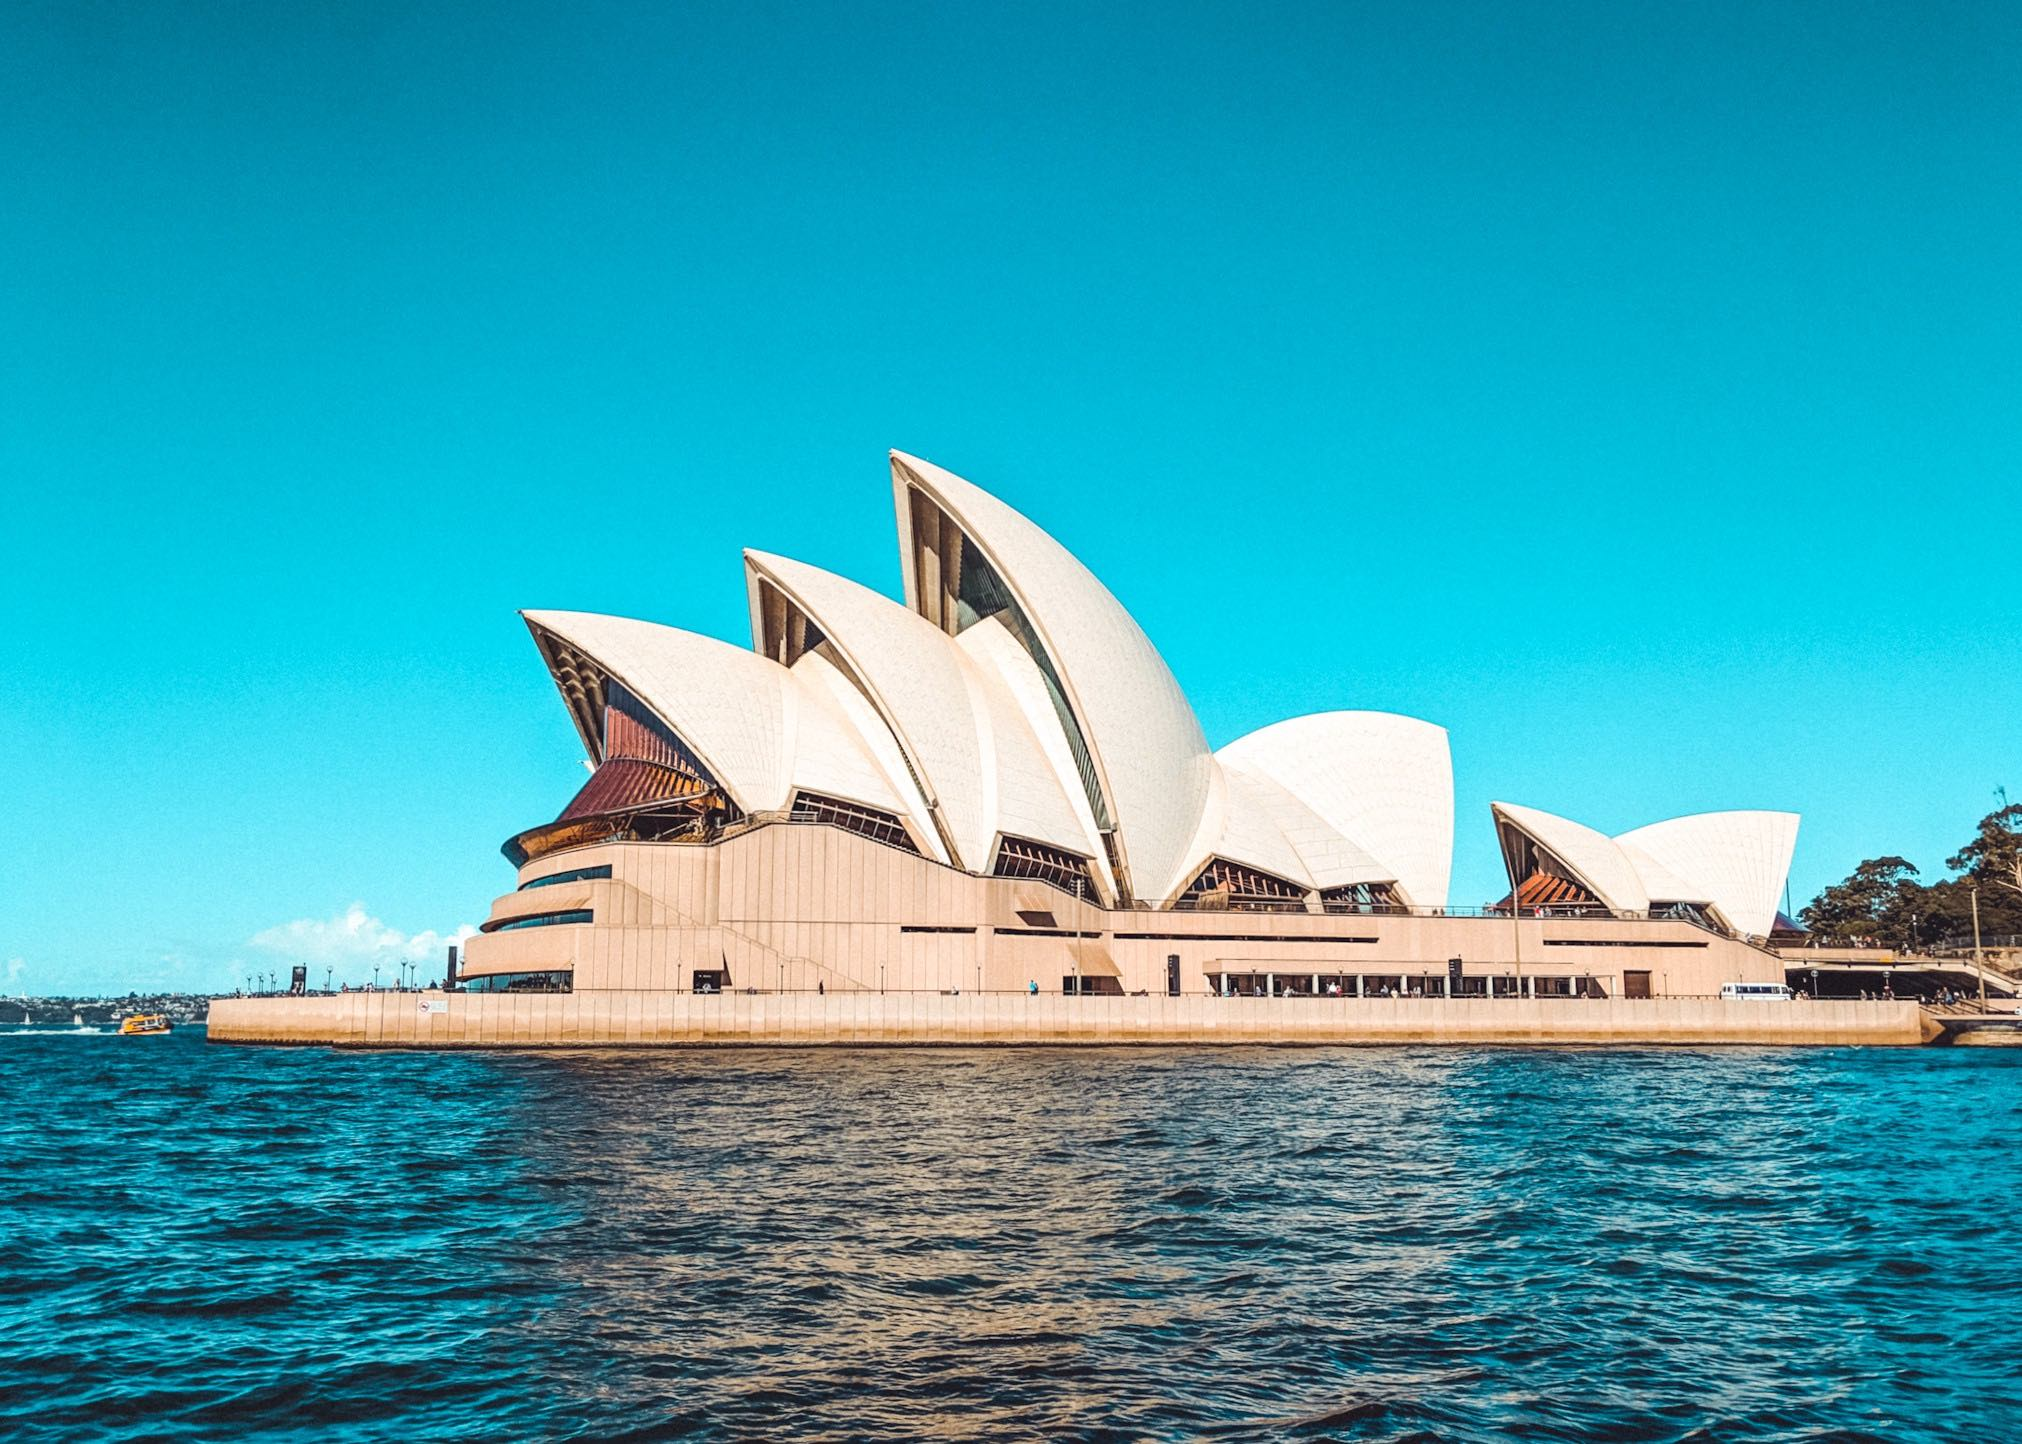 Australia Will Open For Travel In 2020 After All, But Probably Not For You